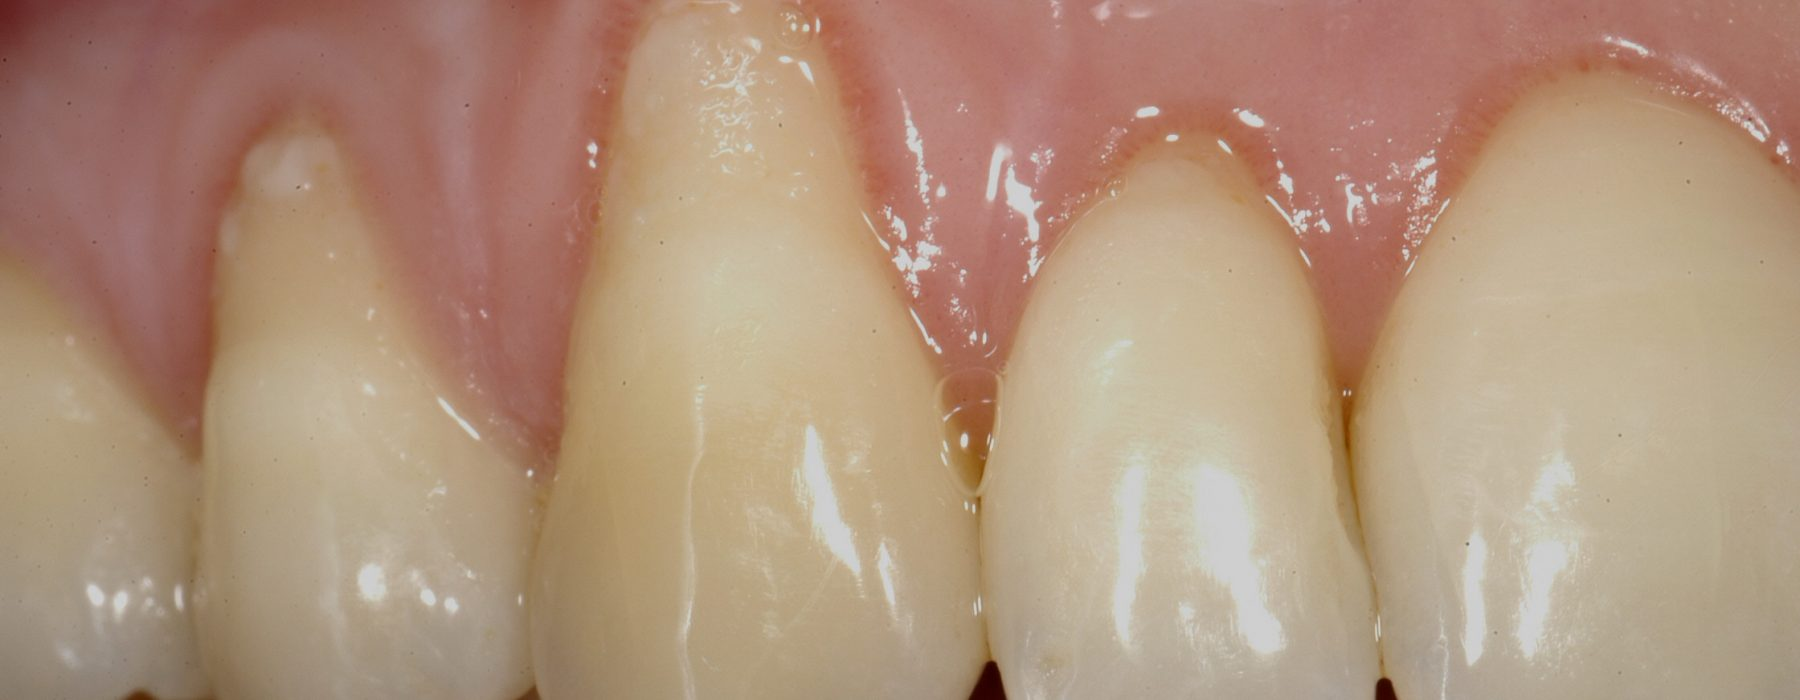 Gingival recessions: An aesthetic problem with solution